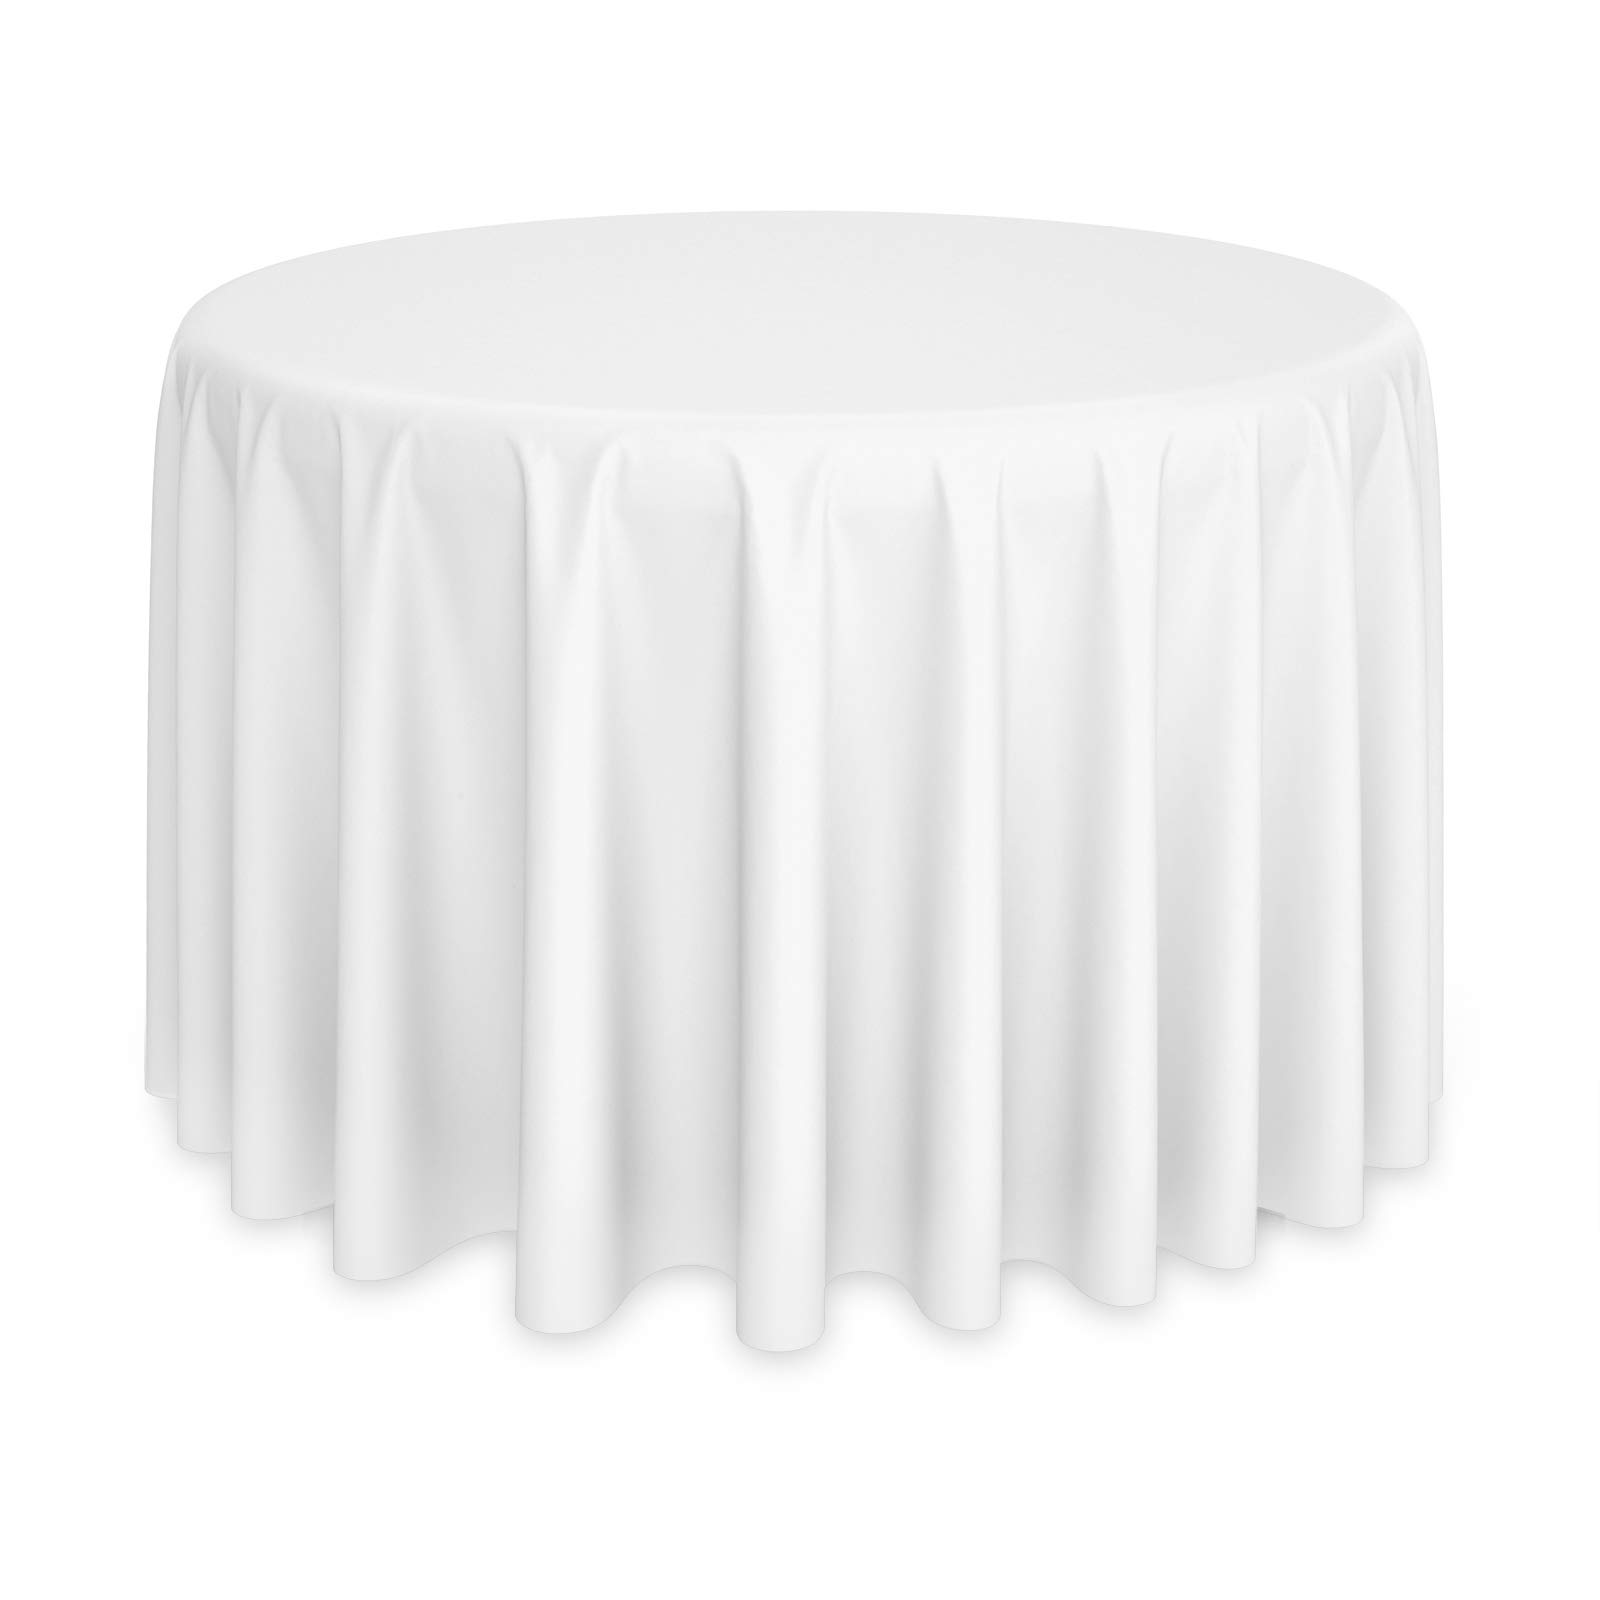 Lann's Linens - 10 Premium 120'' Round Tablecloths for Wedding/Banquet/Restaurant - Polyester Fabric Table Cloths - White by Lann's Linens